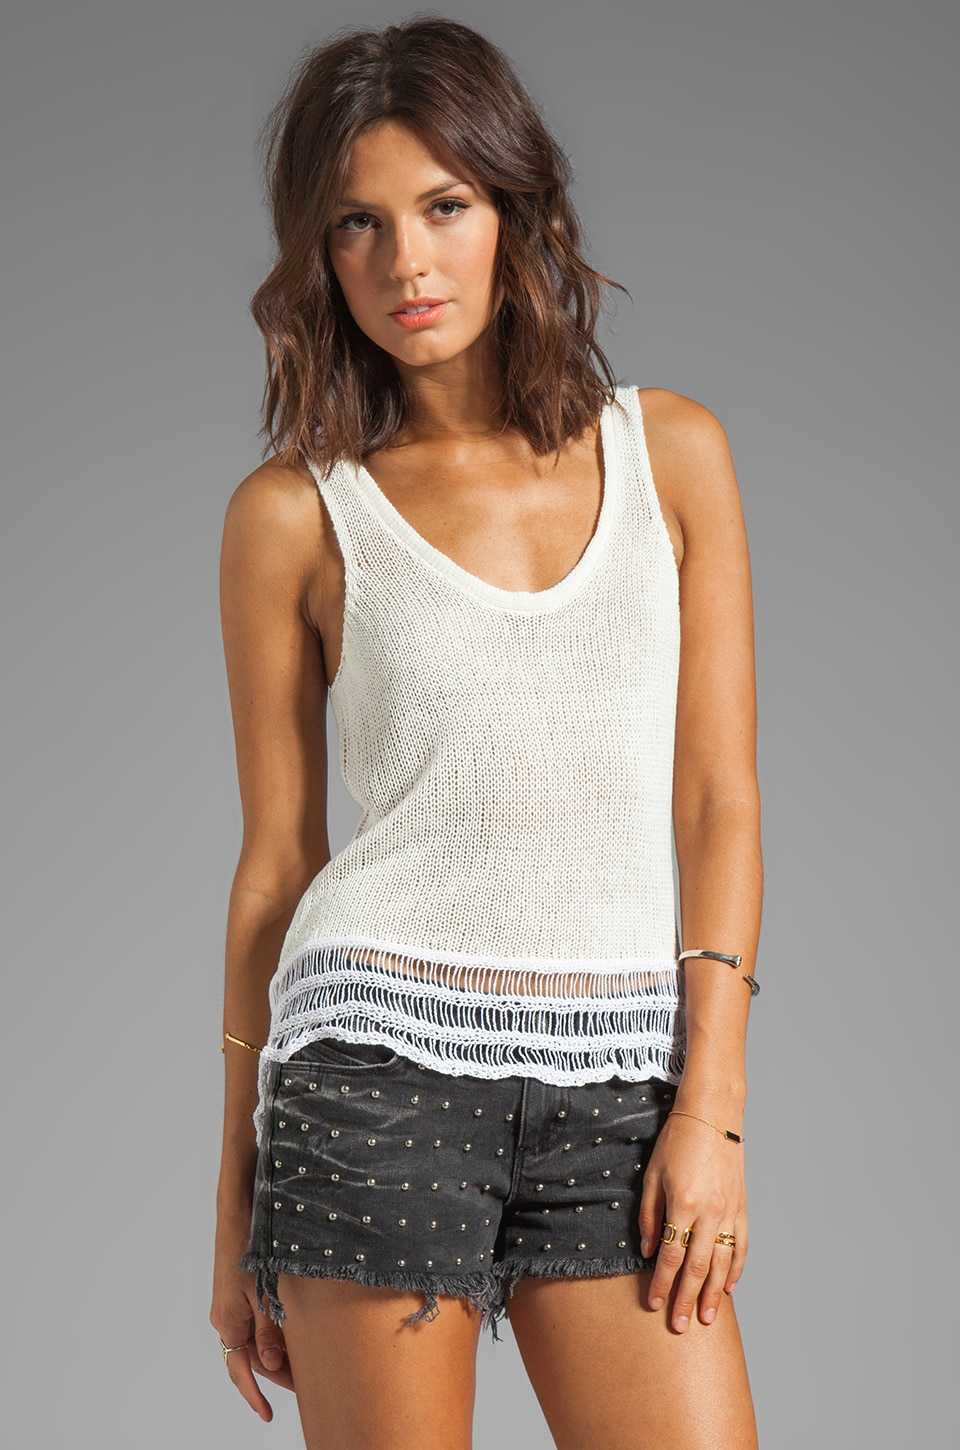 TOWNSEN Bondi Sweater Tank in Natural/White